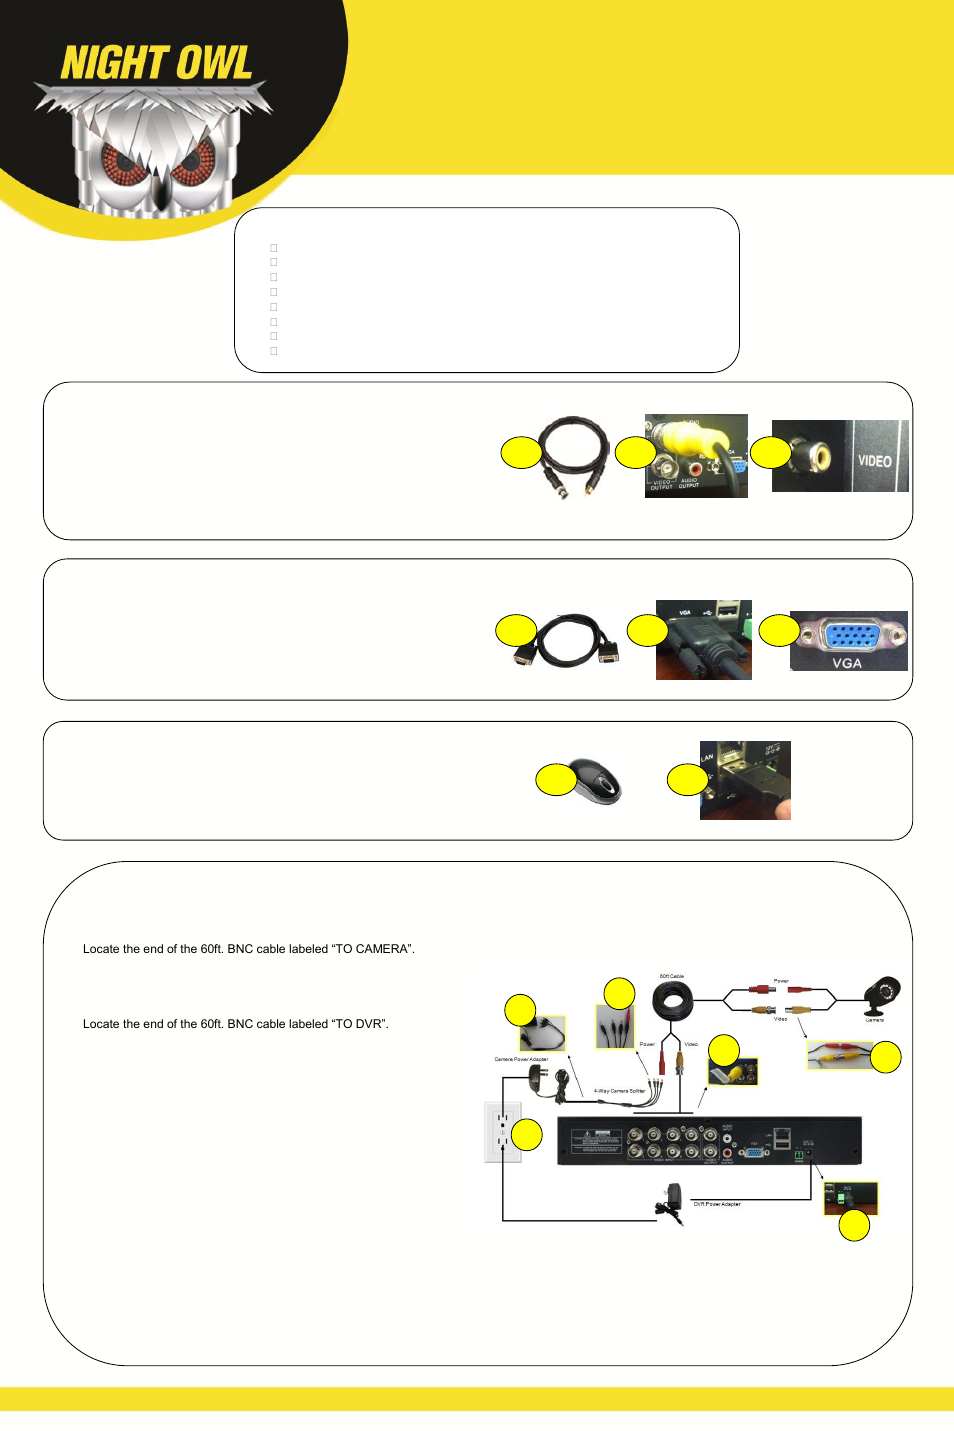 Owl cm130 user manual.